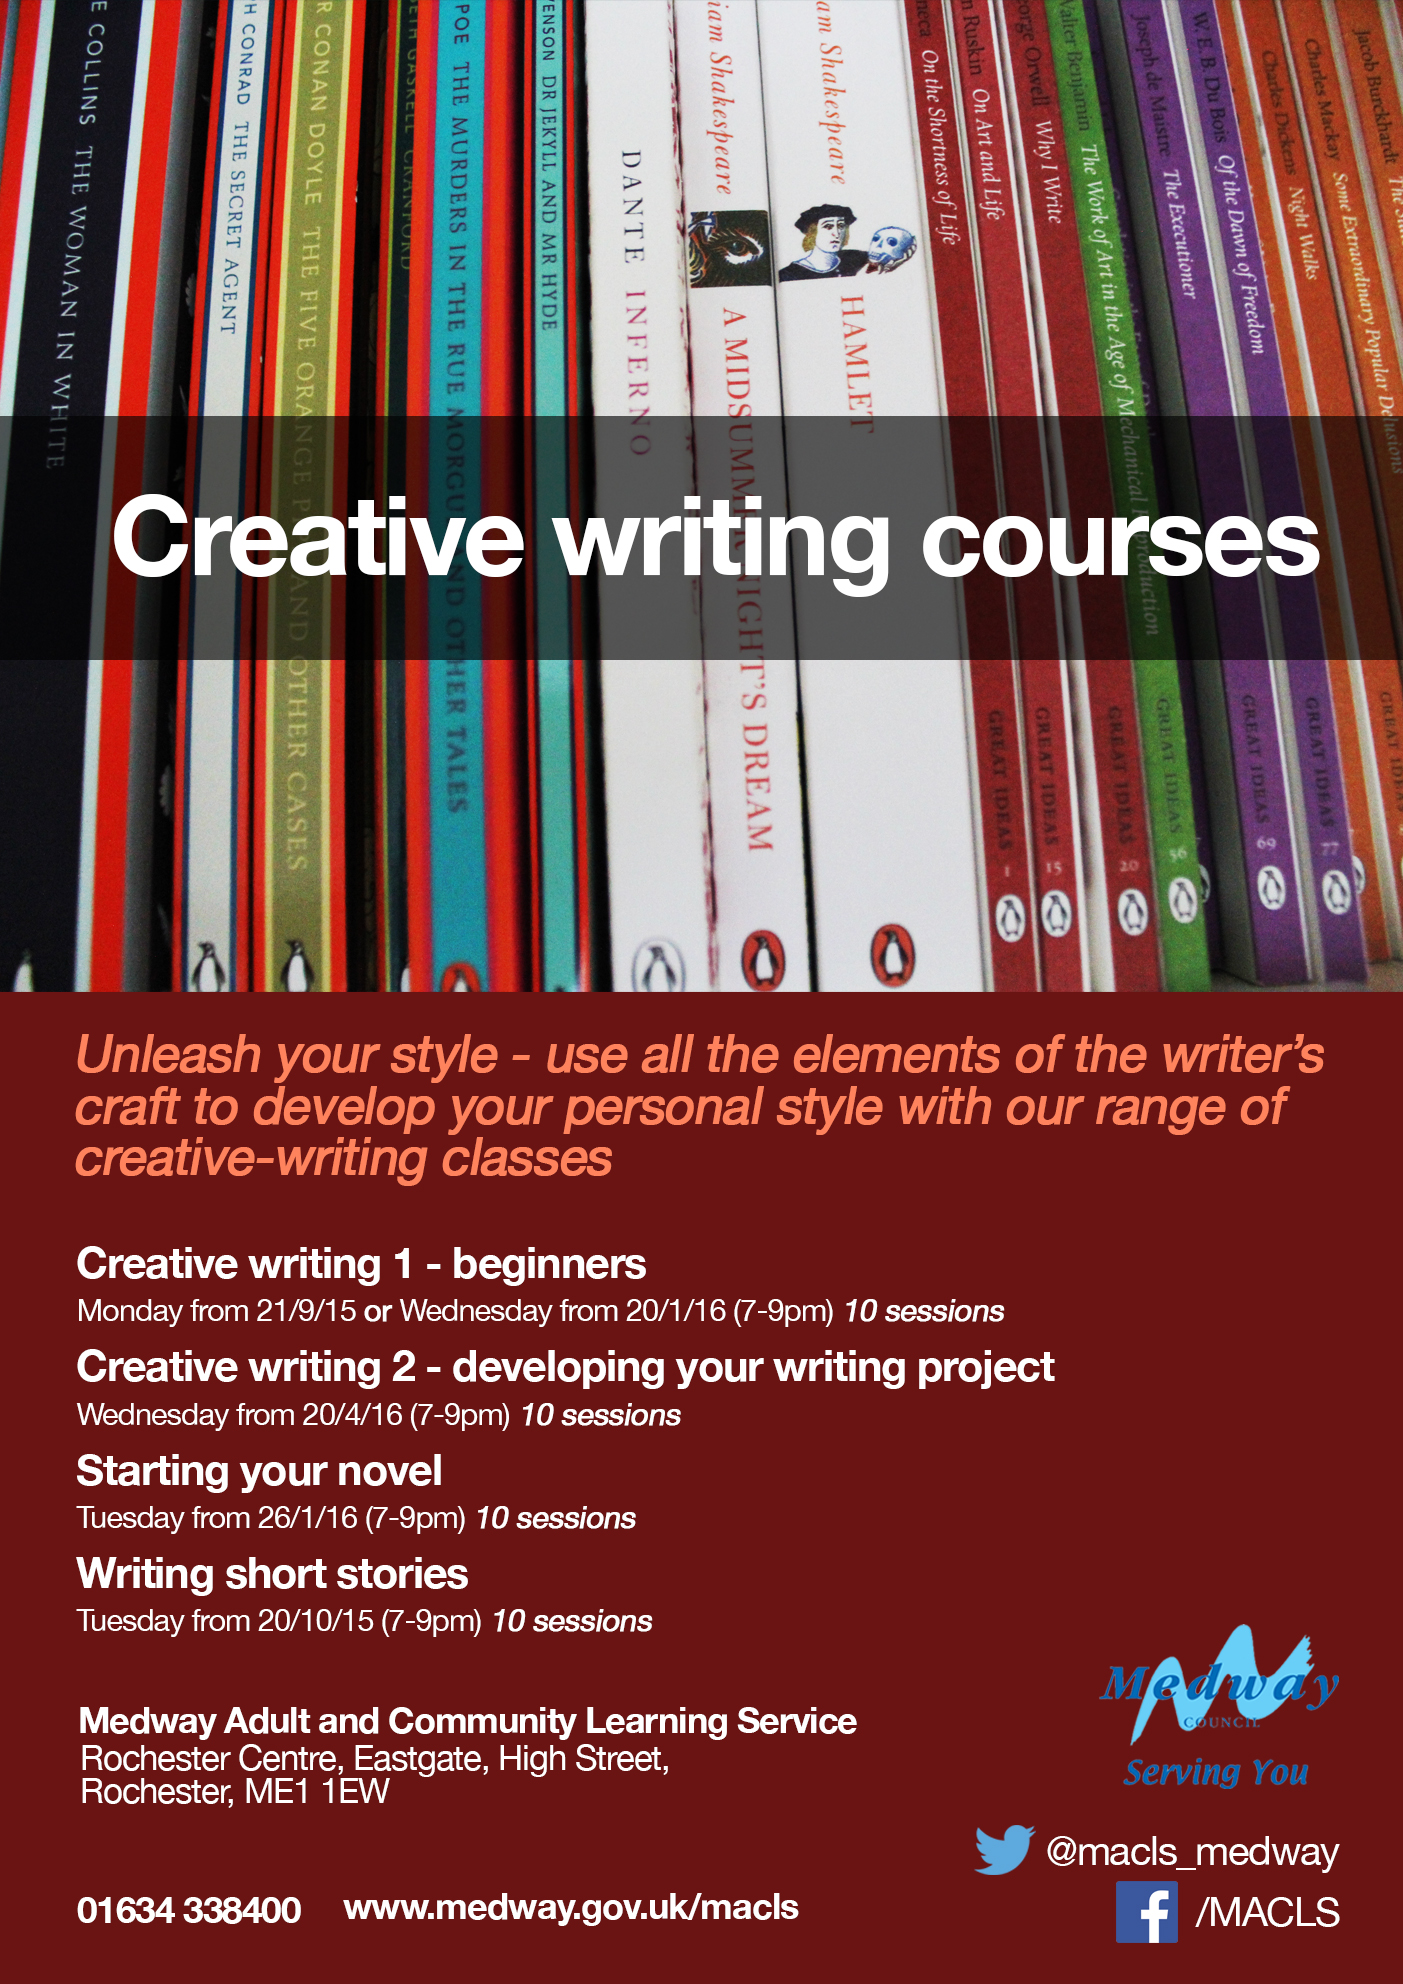 Creative Writing degree cource